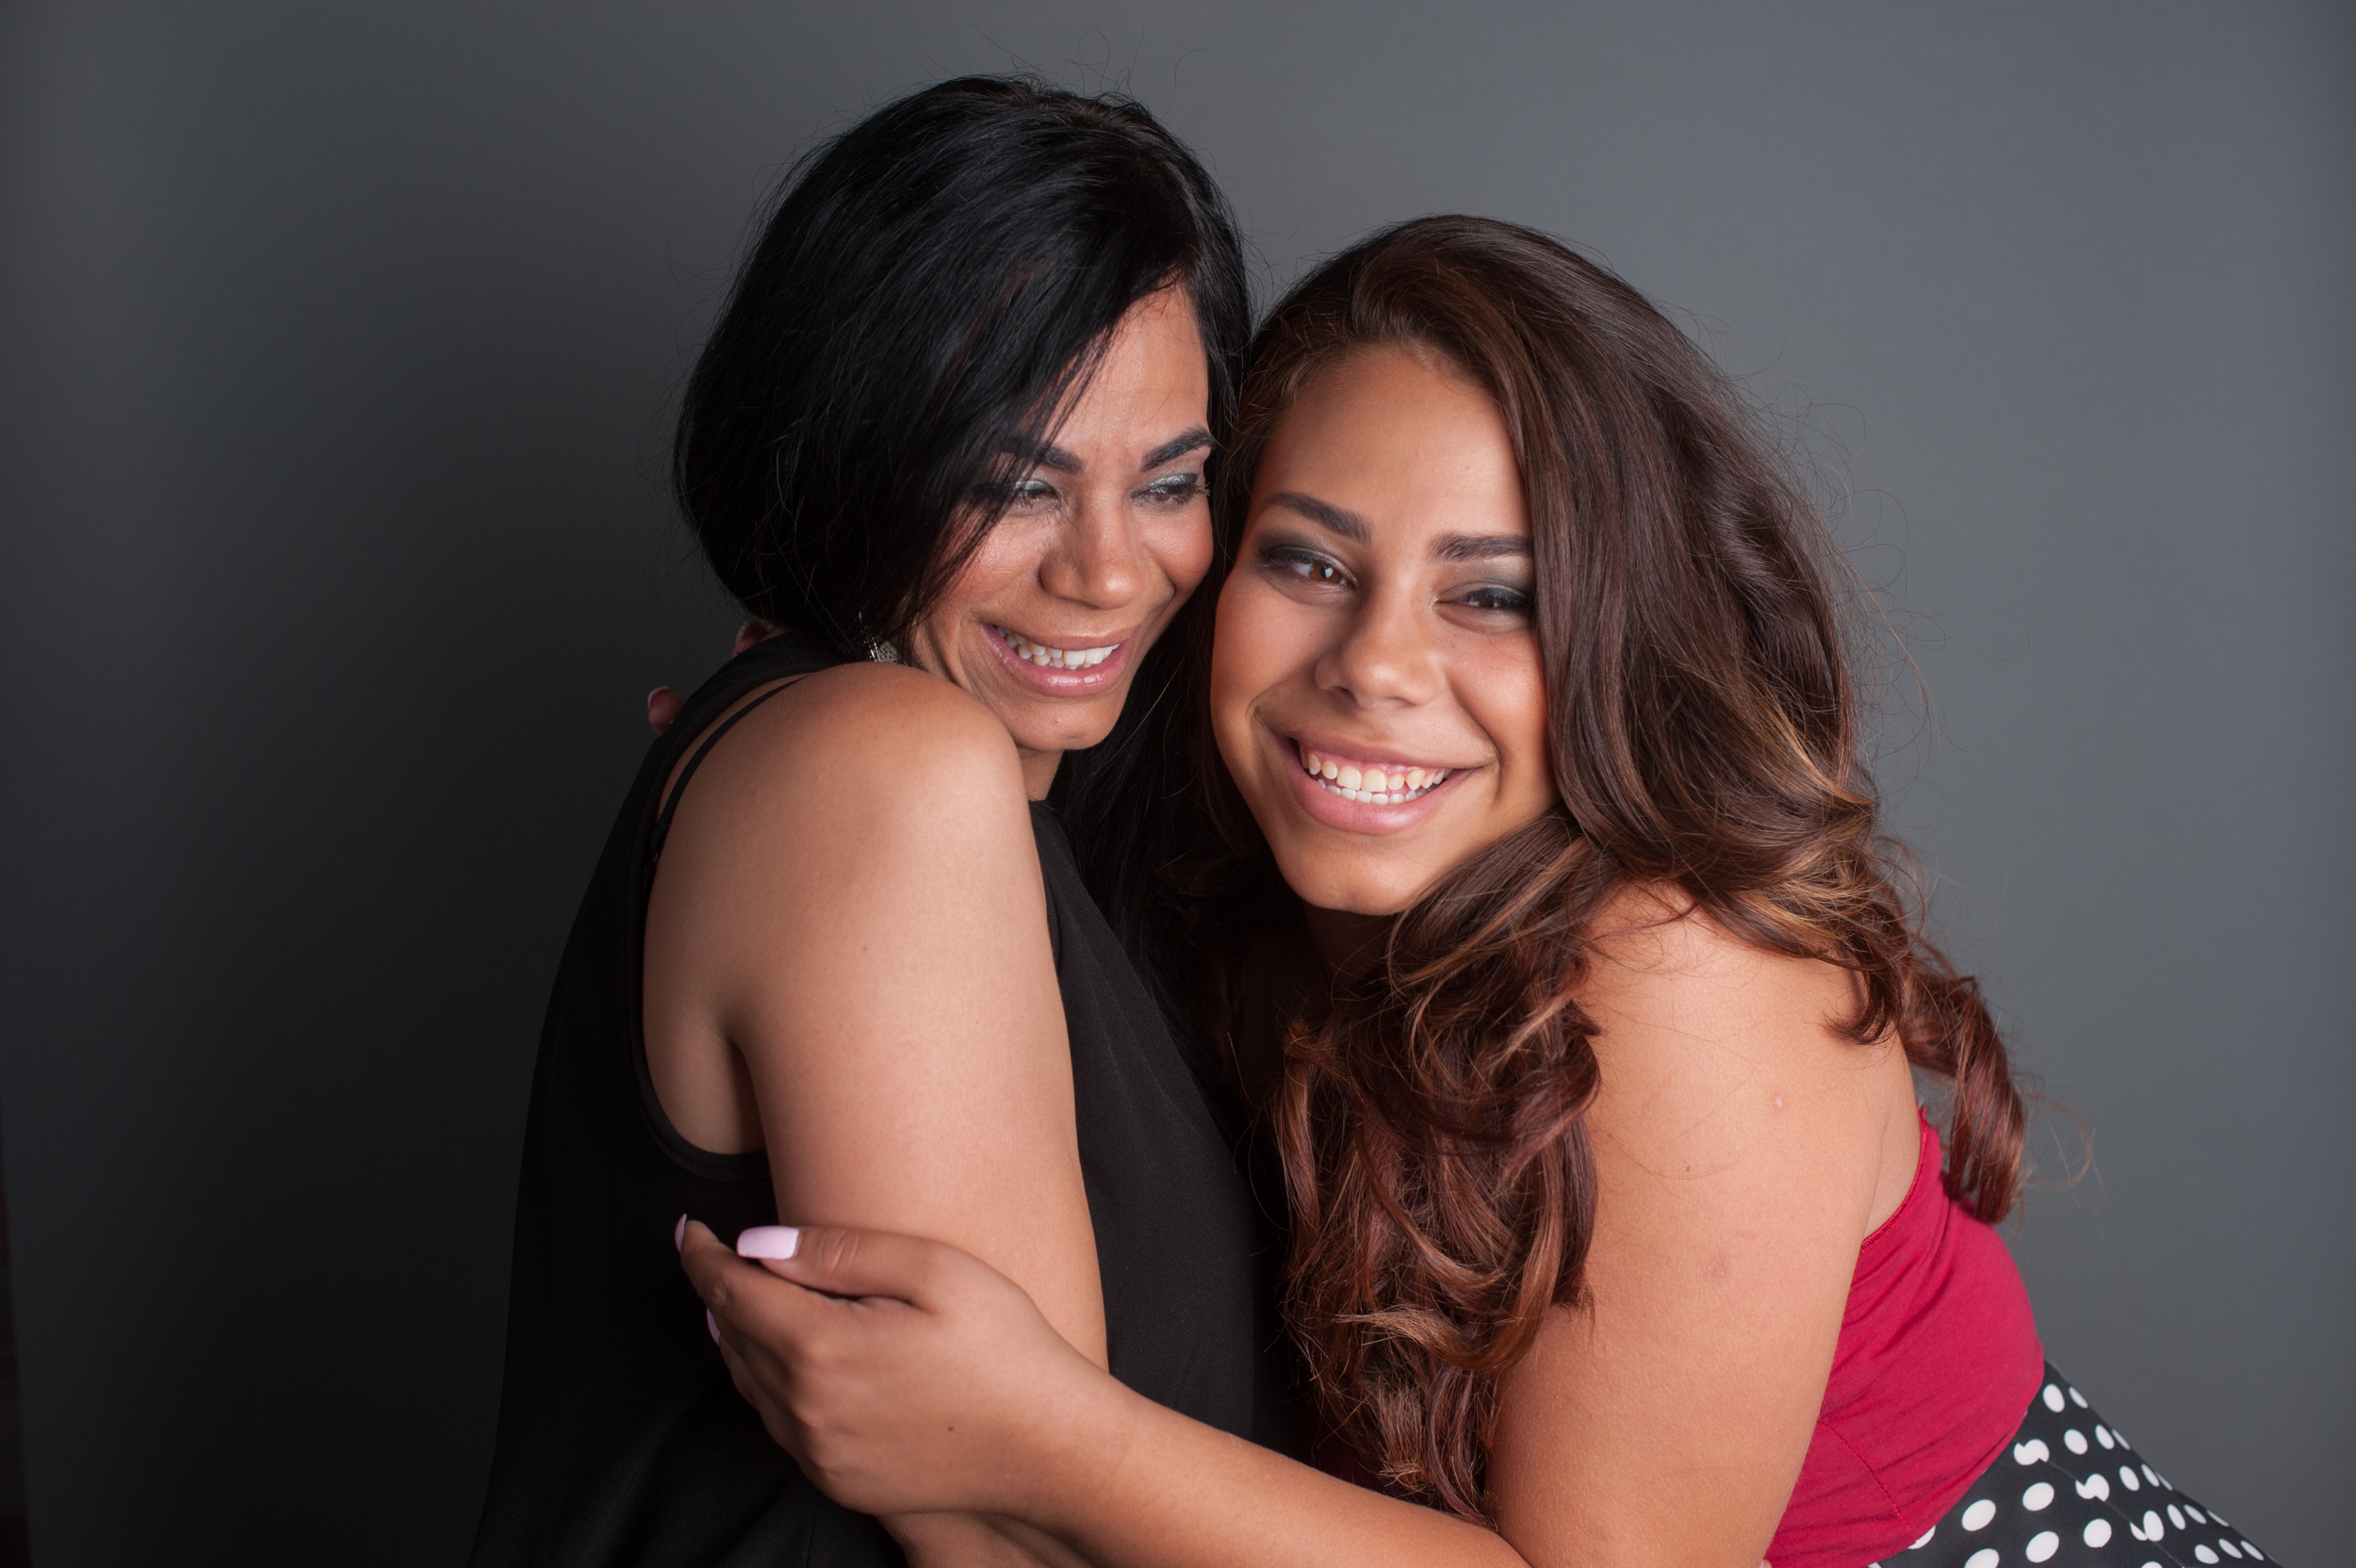 Mother Daughter Beauty Glamour Photo | Nomee Photography | Chicago Portrait Family Photogrpaher